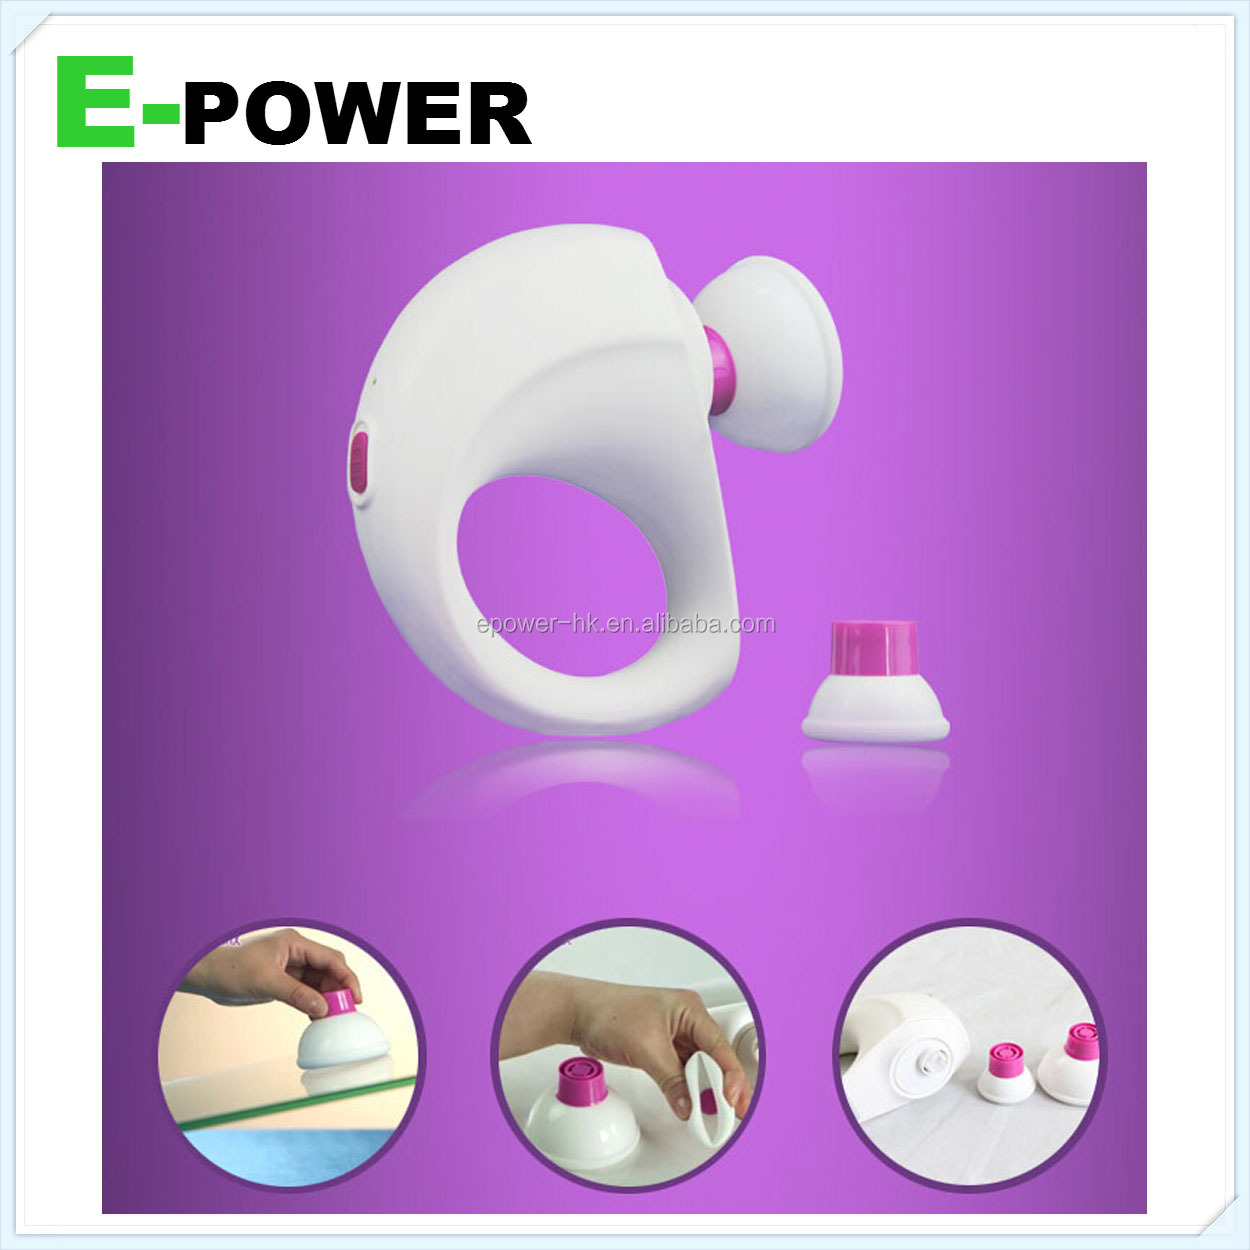 2014 hot new product china alibaba express personal massager